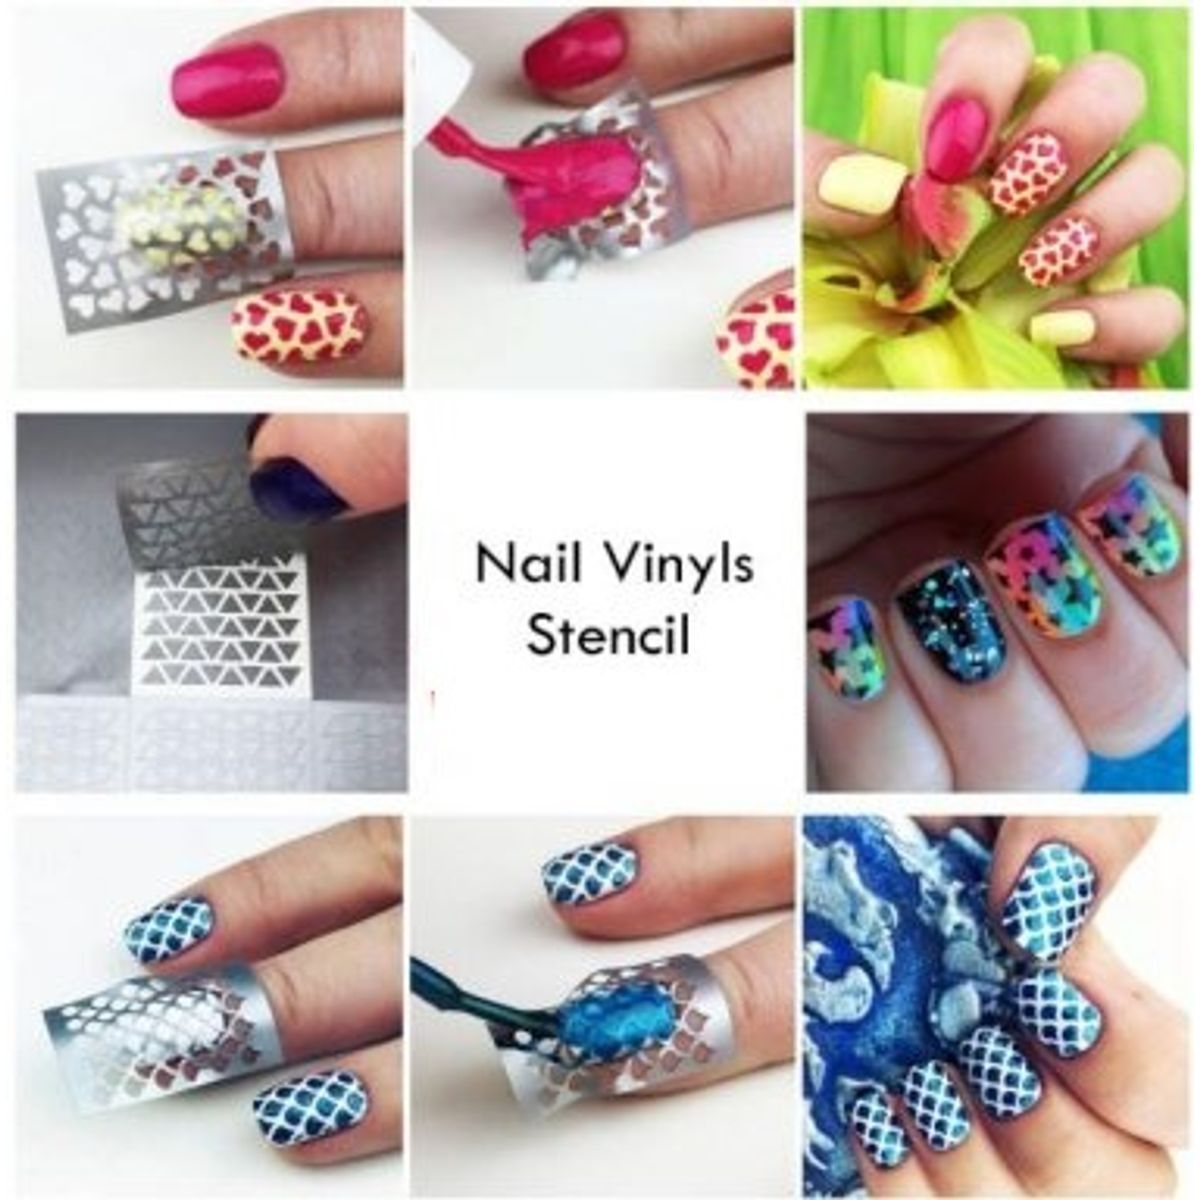 Buy Buyaly Nail Art Vinyl Stencil Template at Lowest Price ...